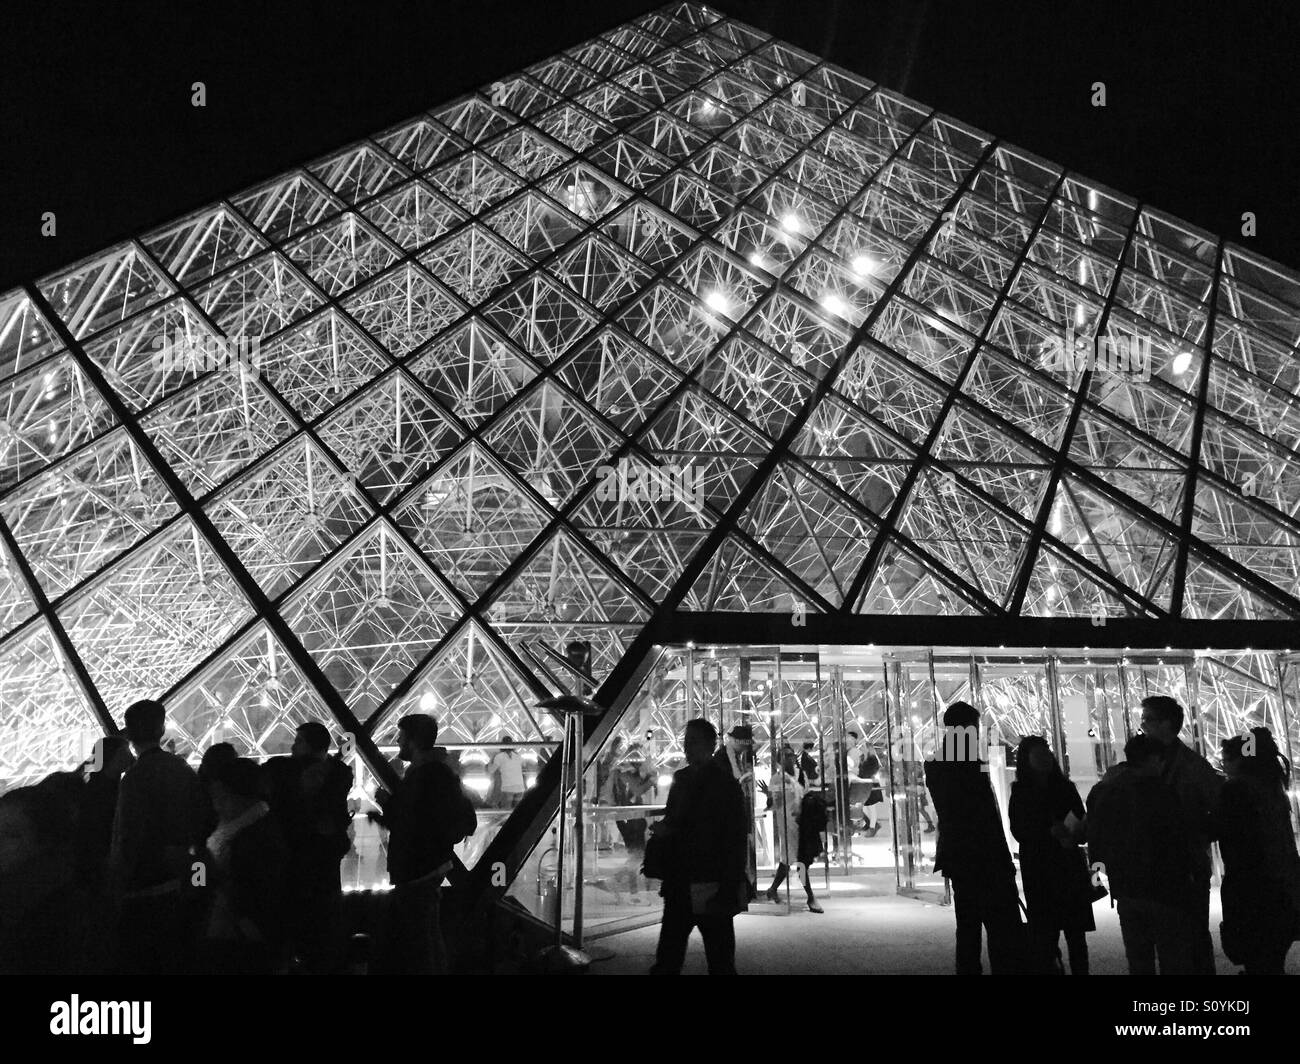 Silhouettes of people stand outside the class pyramid of the Louvre Museum in Paris. - Stock Image